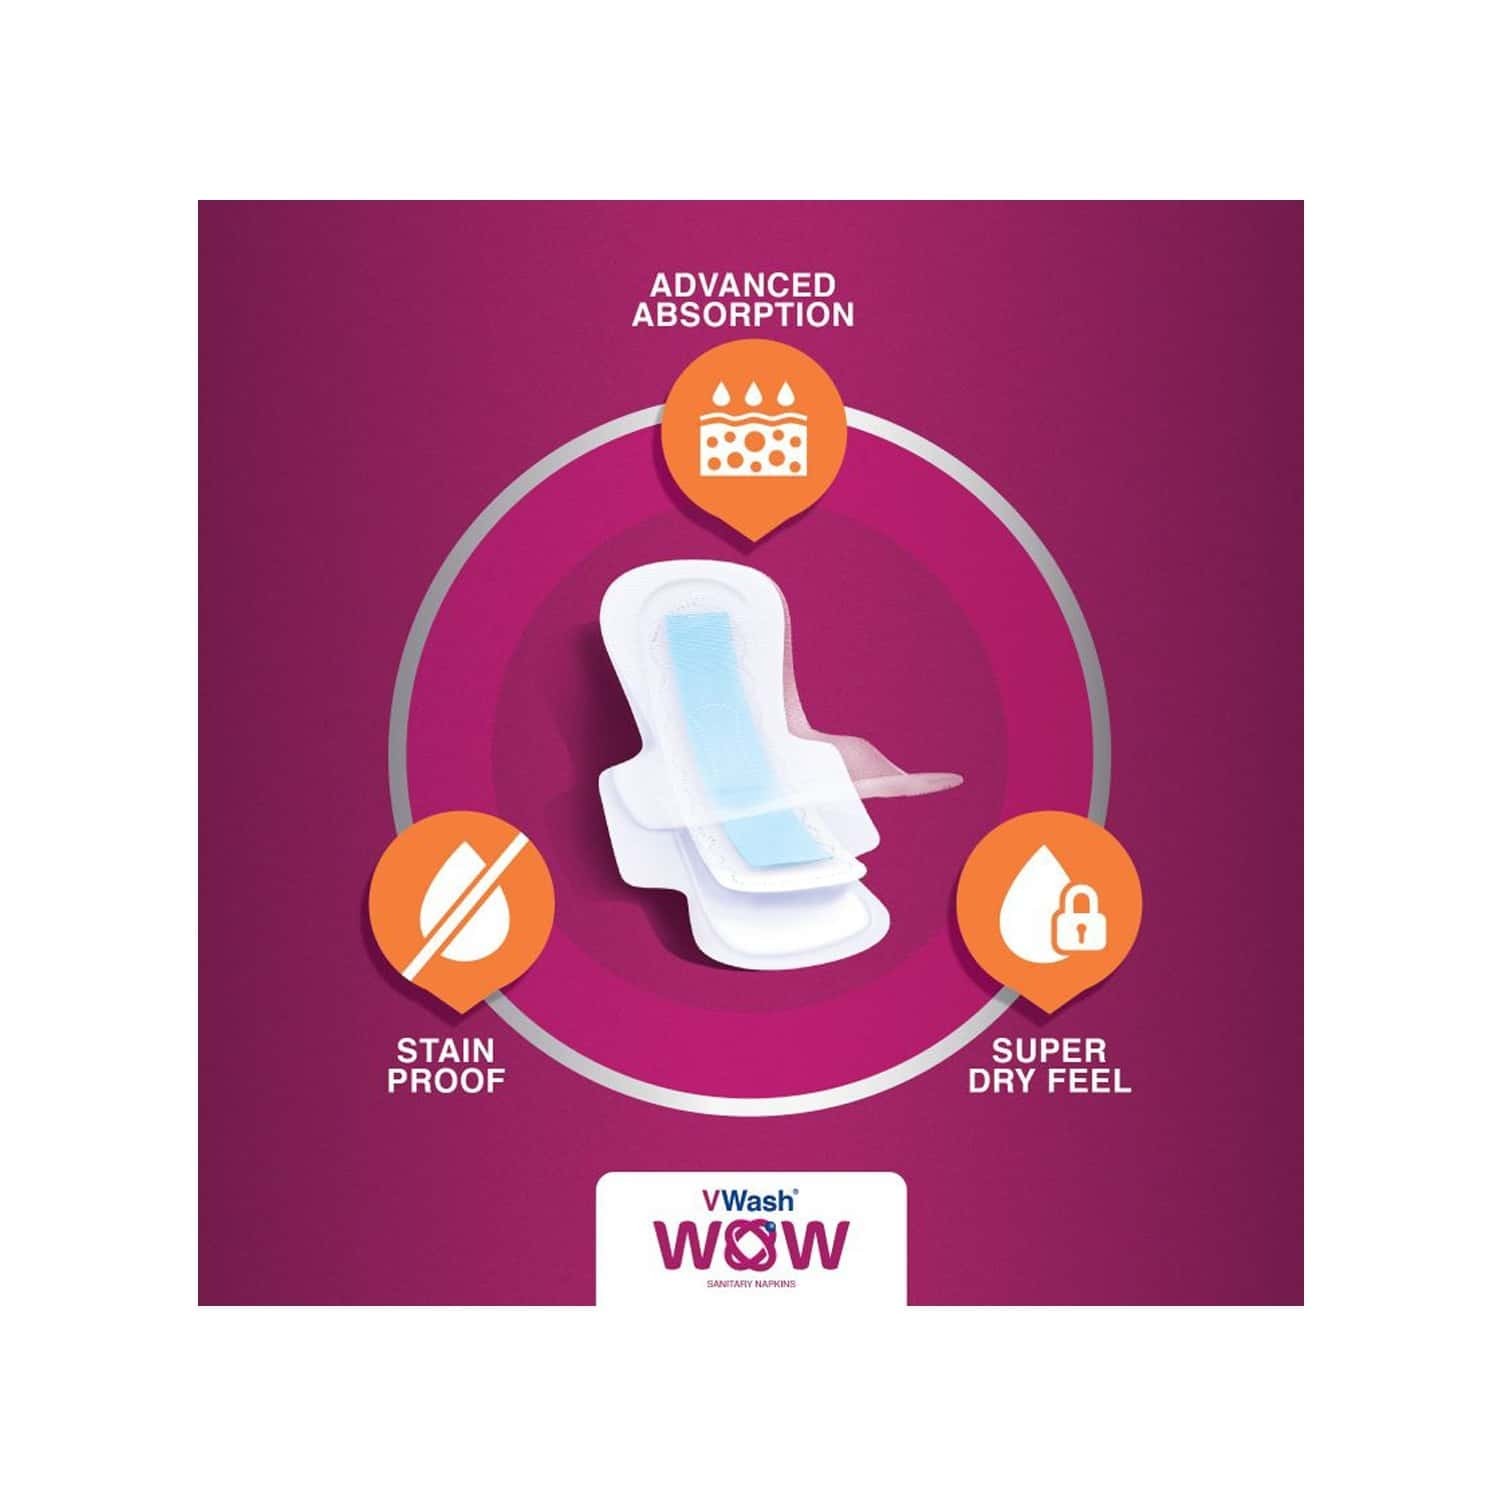 Vwash Wow Ultra Thin Size L Sanitary Pads Pack Of 48 (packs Of 3x16)